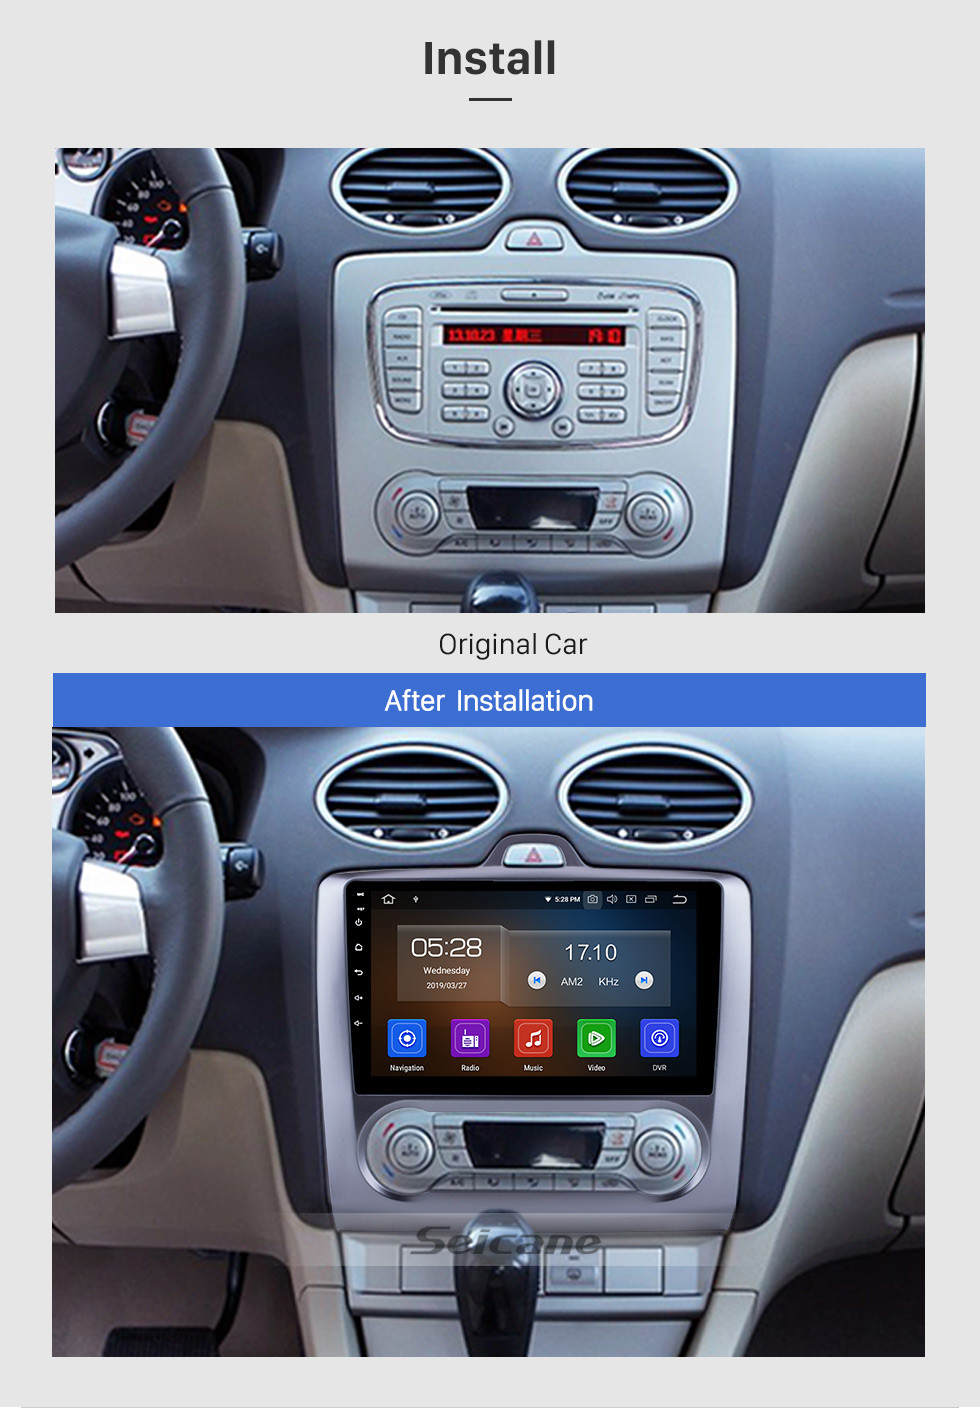 Seicane 10.1 Inch Android 9.0 HD Touchscreen Radio for 2004-2011 Ford Focus 2 Auto A/C with GPS Navigation Bluetooth Car Stereo Mirror Link USB RDS DAB+ 3G Wifi Steering Wheel Control